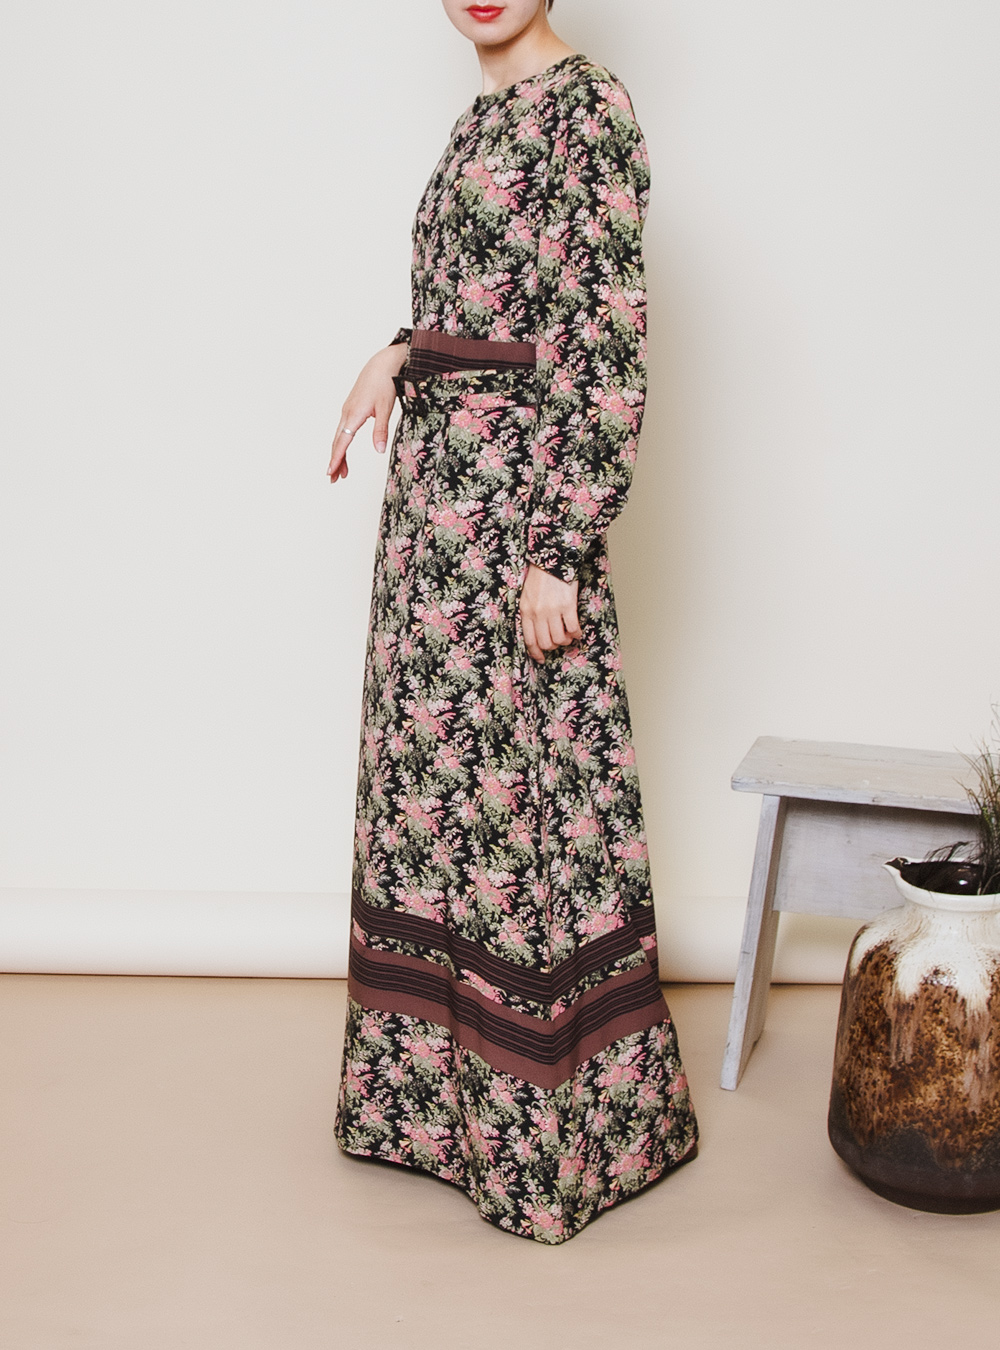 Flower × Border Design Maxi Dress